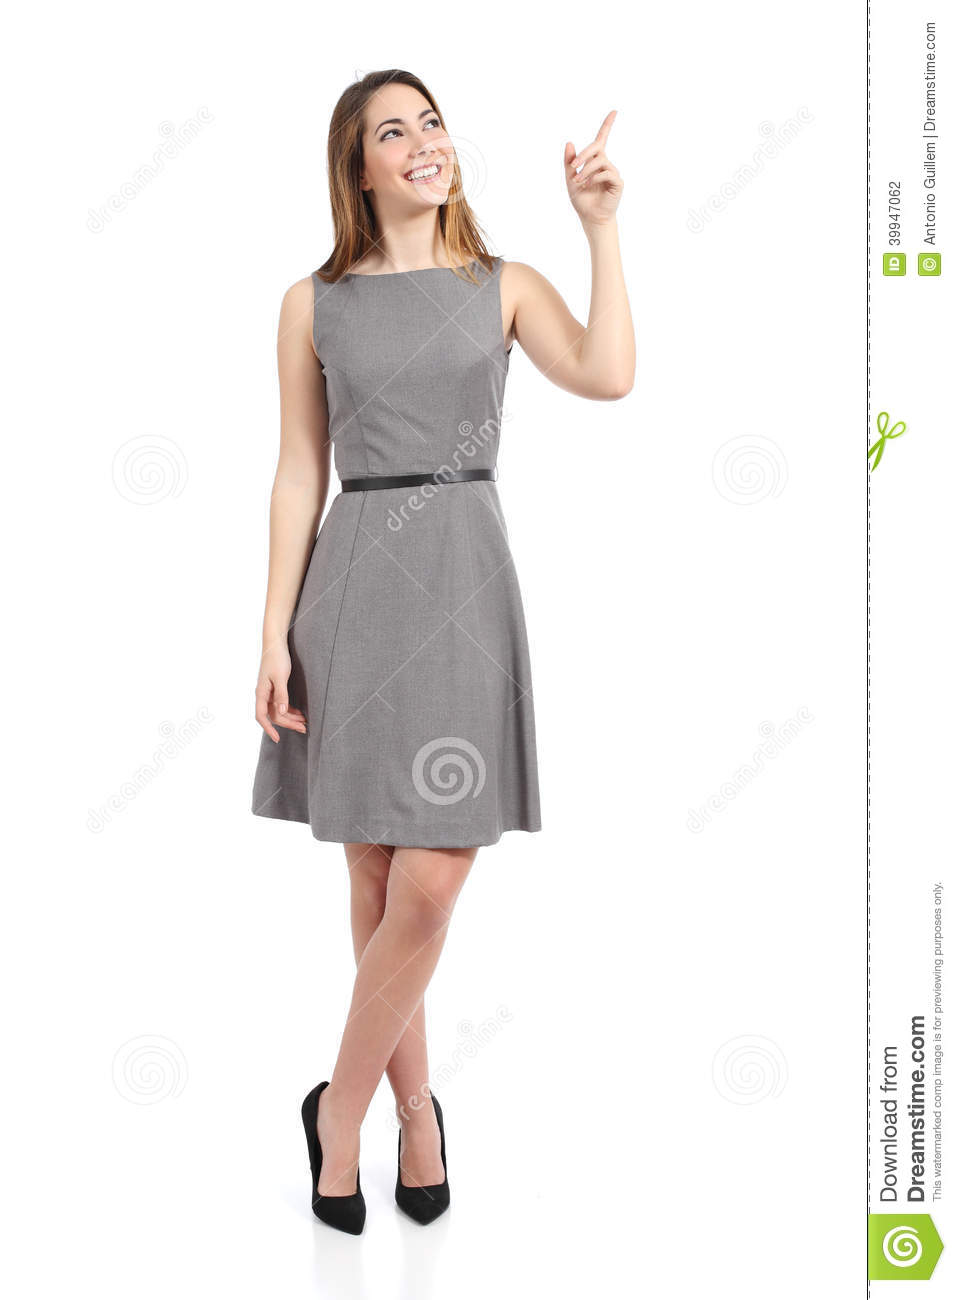 of a standing woman pointing at side isolated on a white backgroundWoman Standing Side White Background